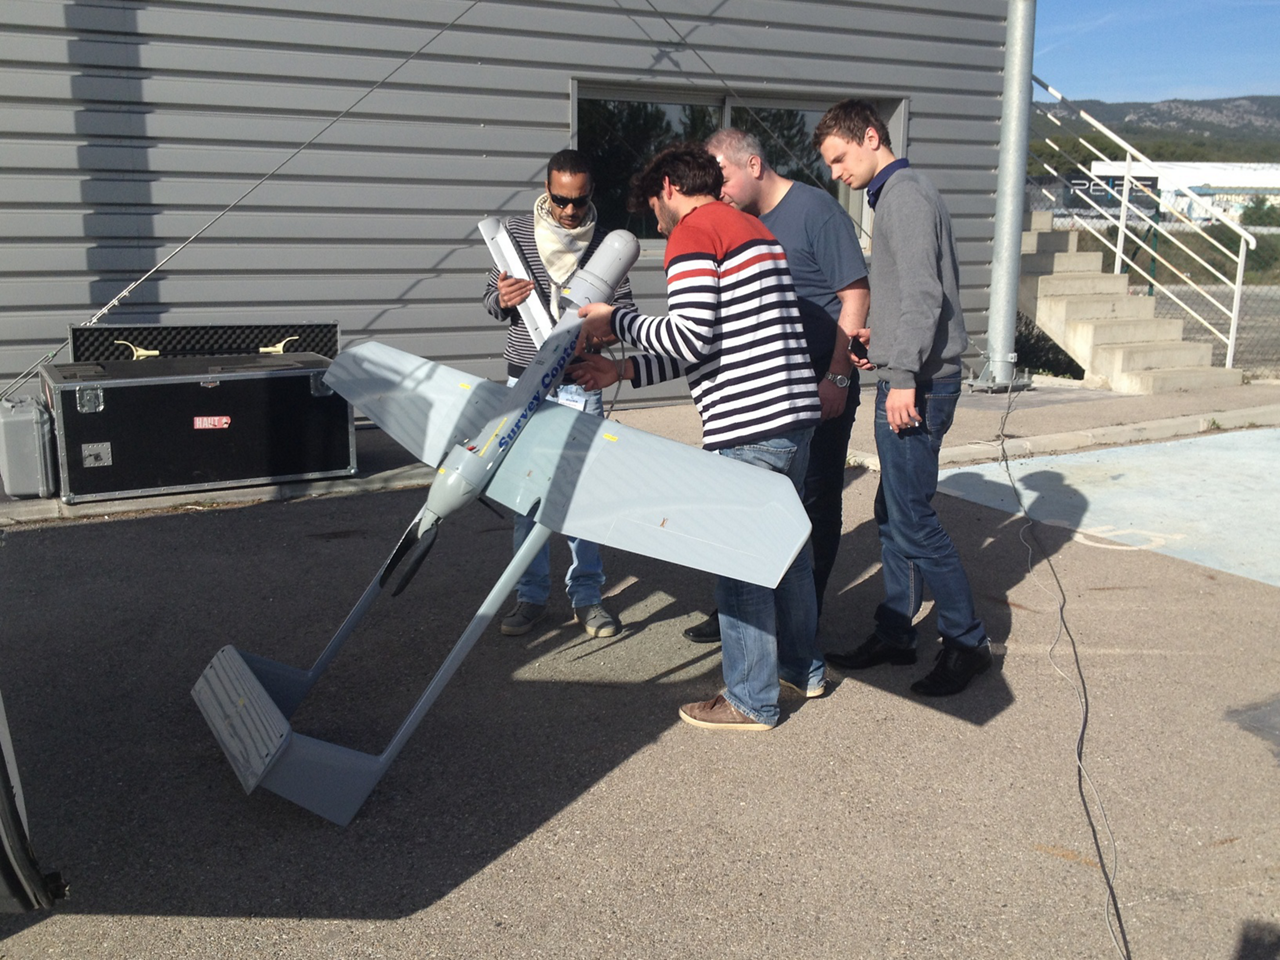 An unmanned aerial vehicle (UAV) is examined before flight.